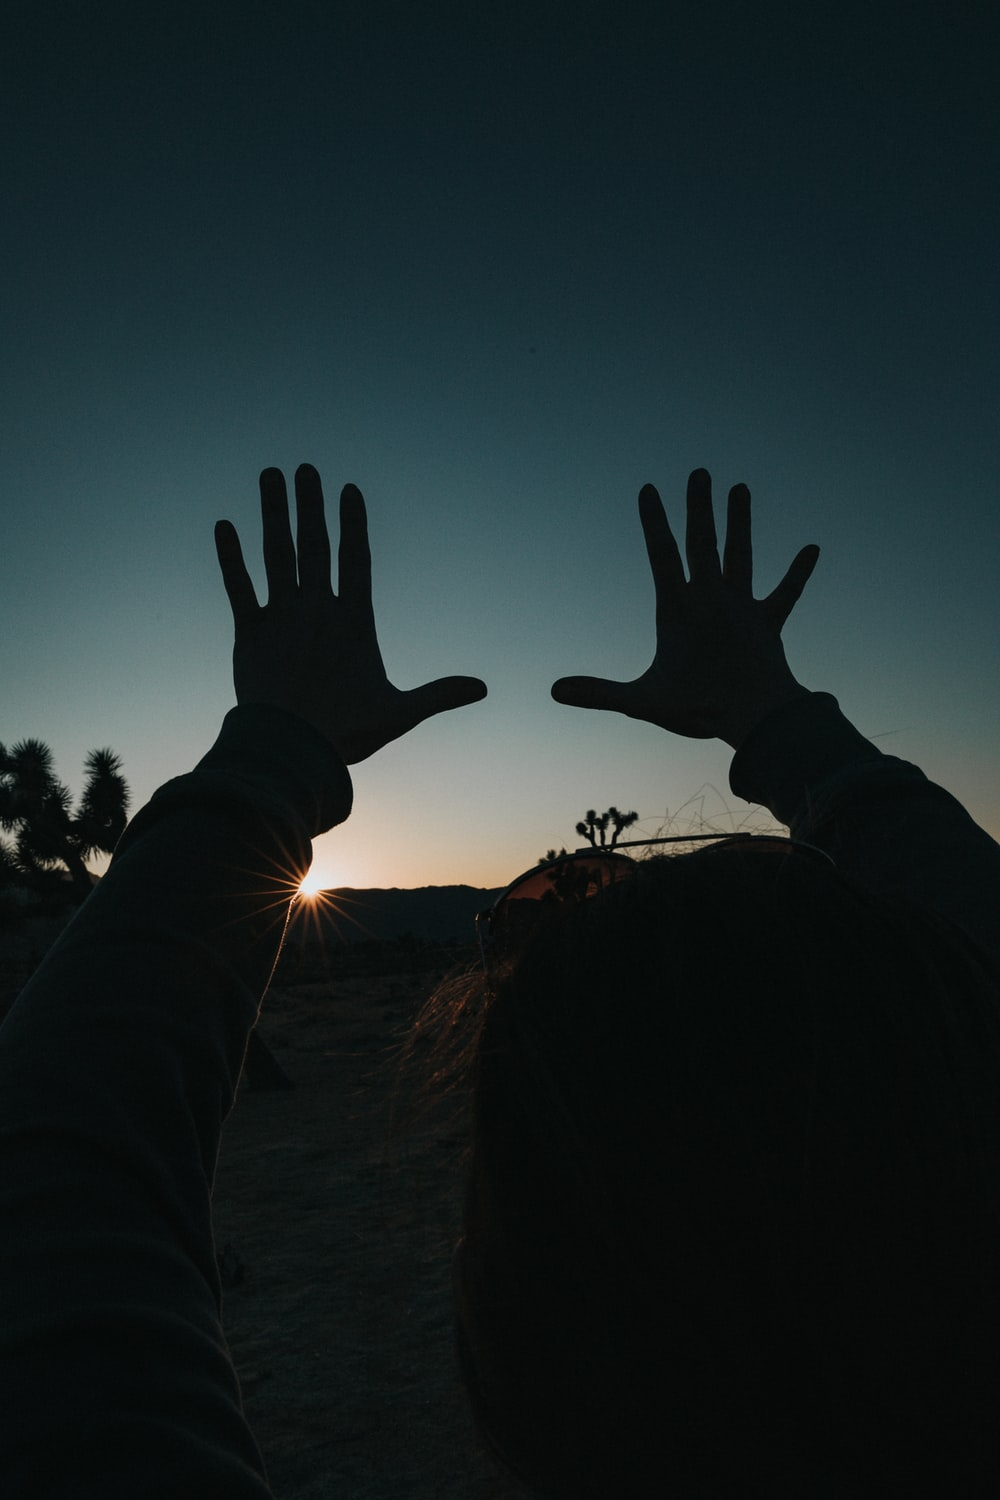 silhouette of persons hand